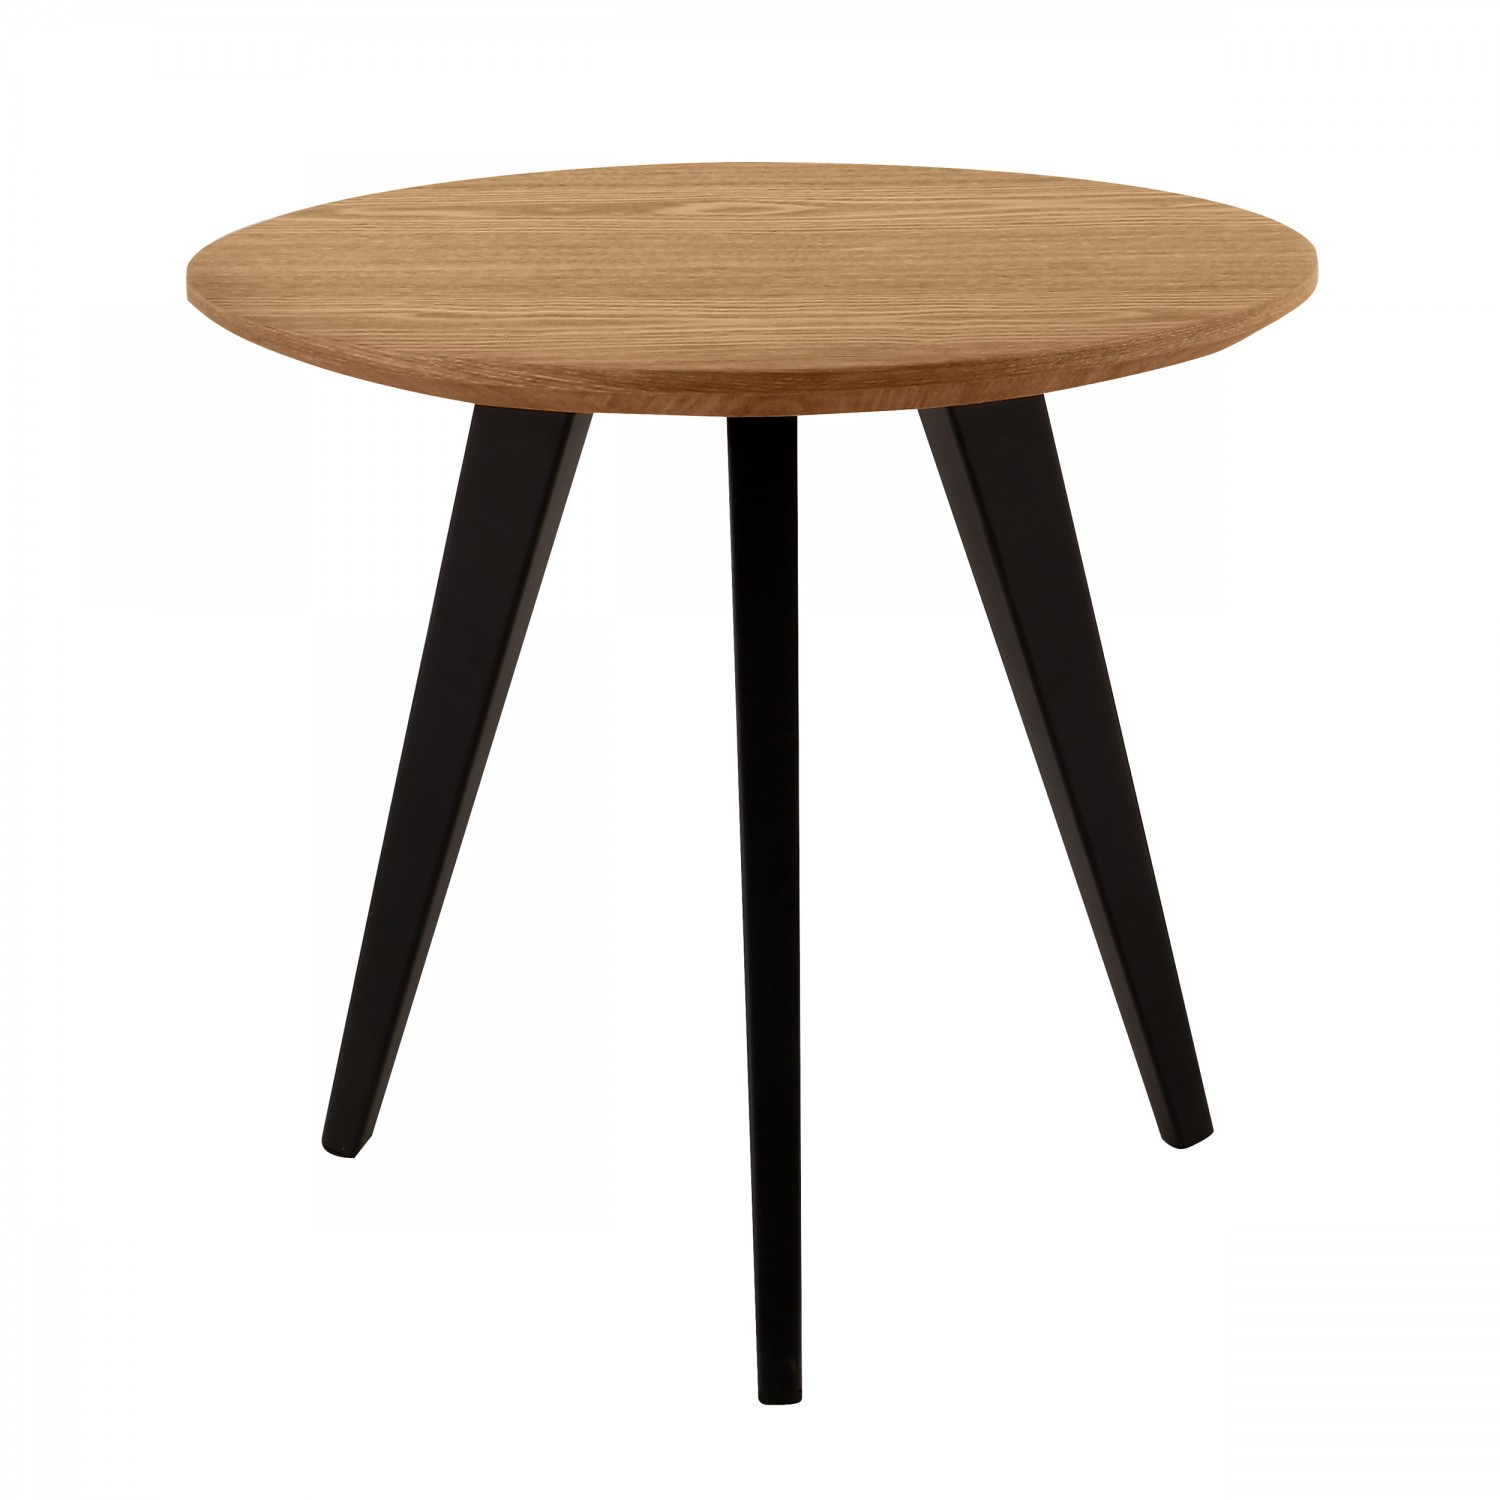 Table De Salon Bois Clair Table Basse Ronde 50 Cm Bois Clair Koya Design